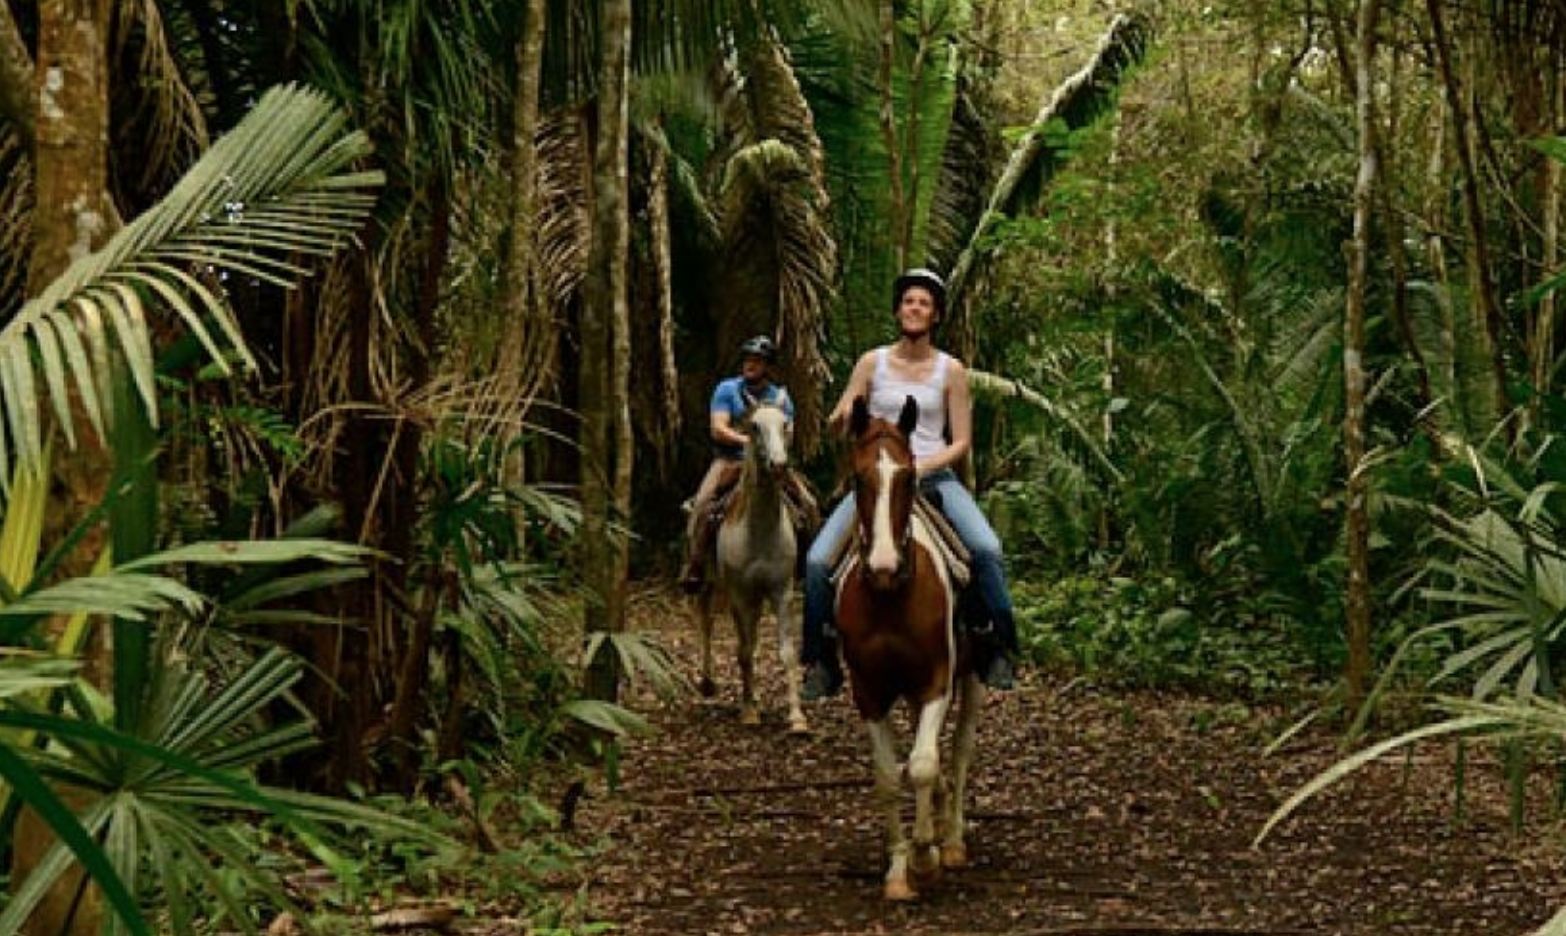 Horseback Riding - Leaving from Outback Stables, guests will pass through a citrus grove before entering the hills surrounding the Maya Mountains. See the remains of an ancient Maya Civilization until you reach the Sittee River. Take a break and a swim before hitting the trail on this half day excursion.